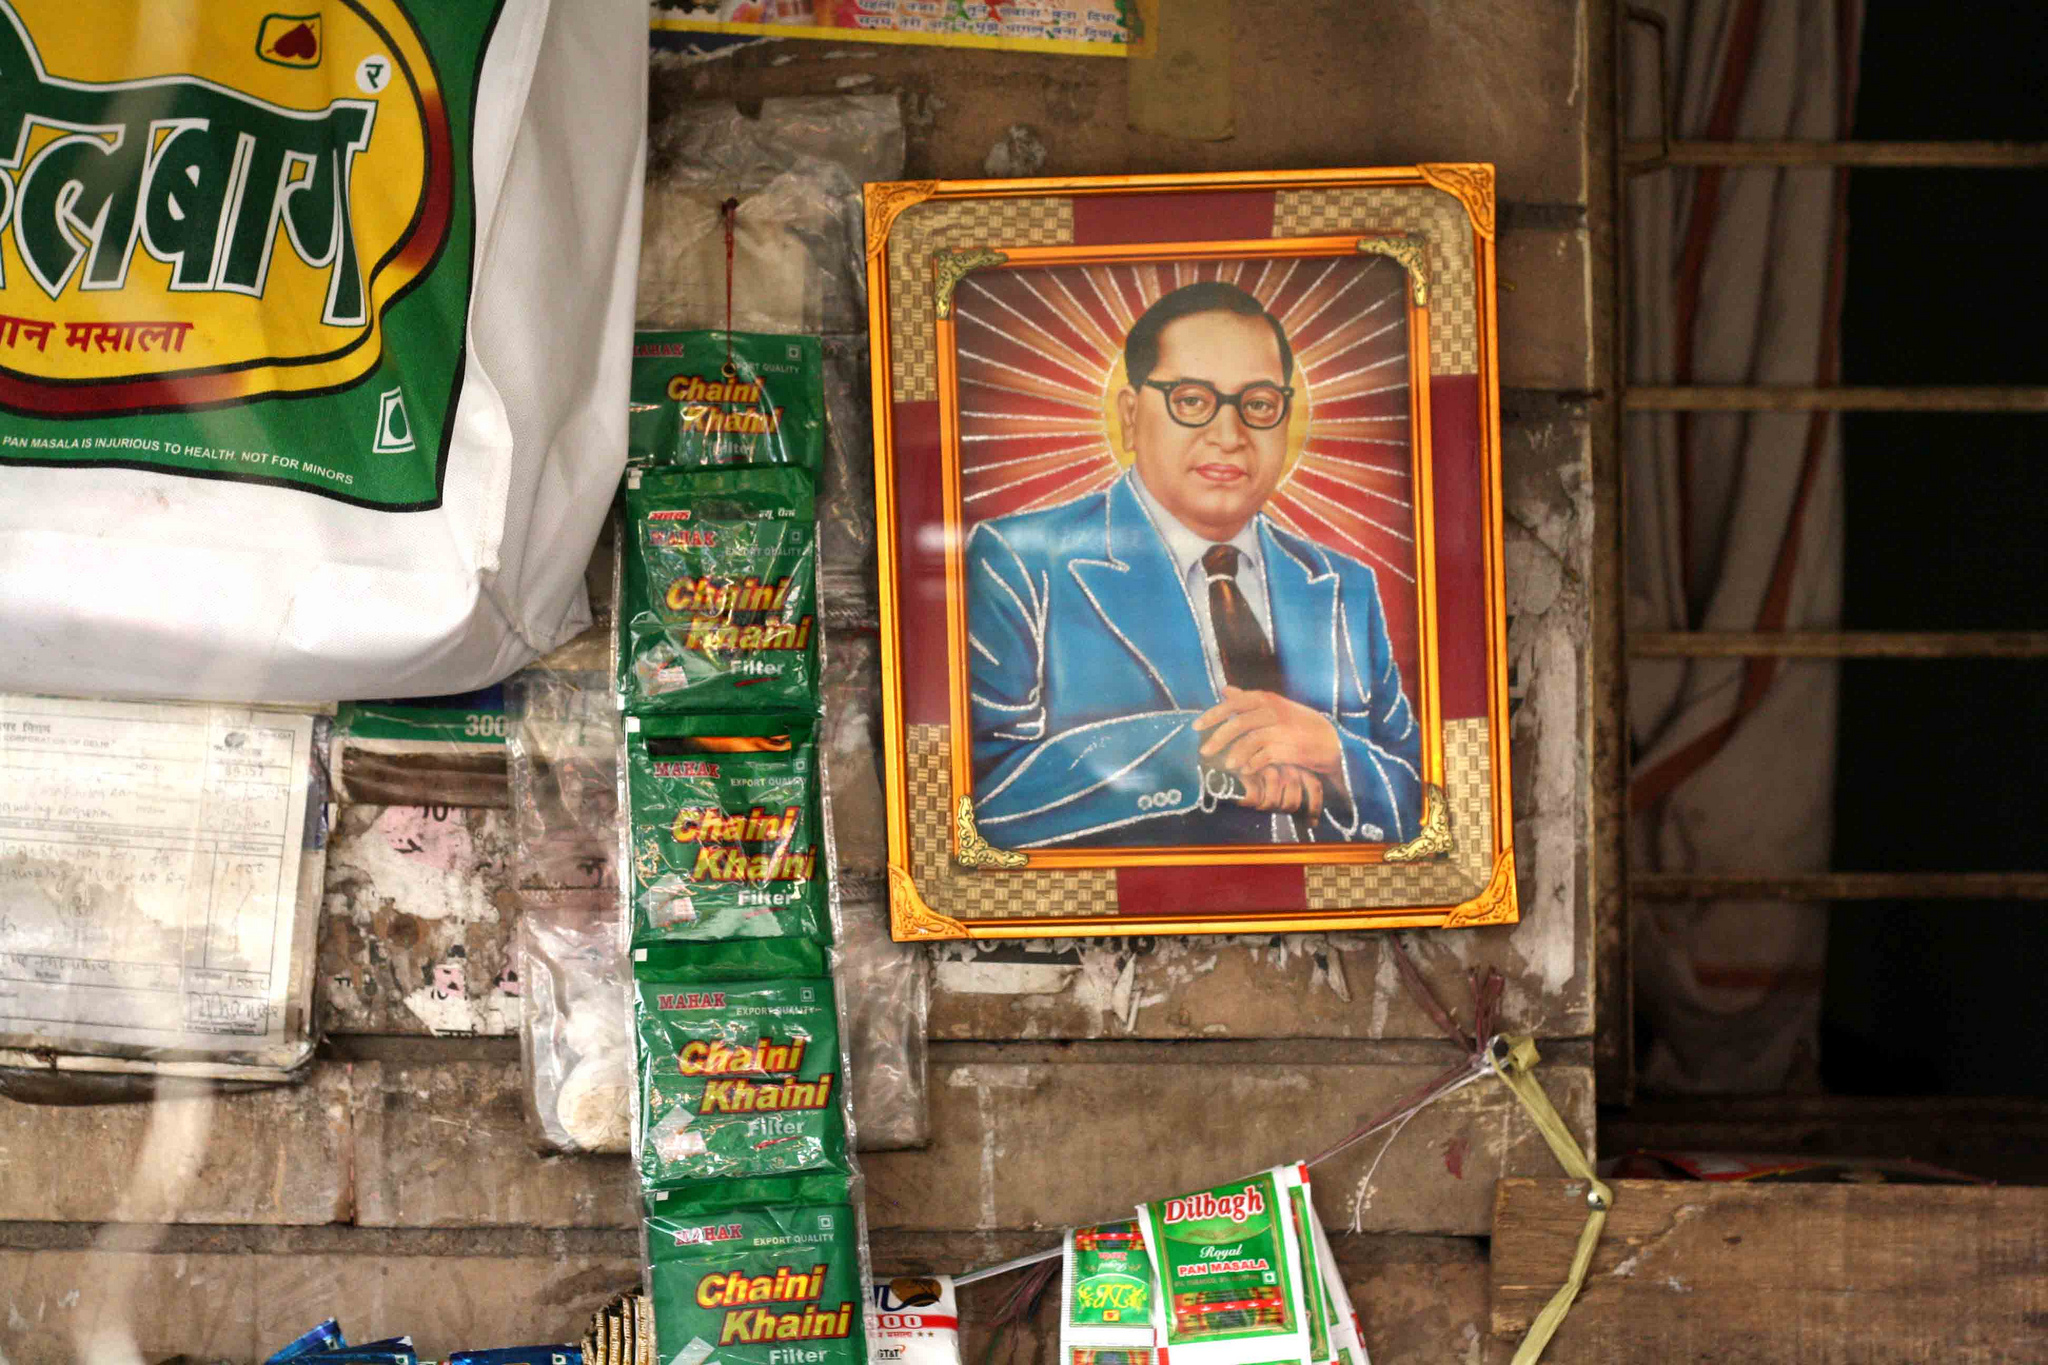 City Sightings - Mr Ambedkar's World, Around Town